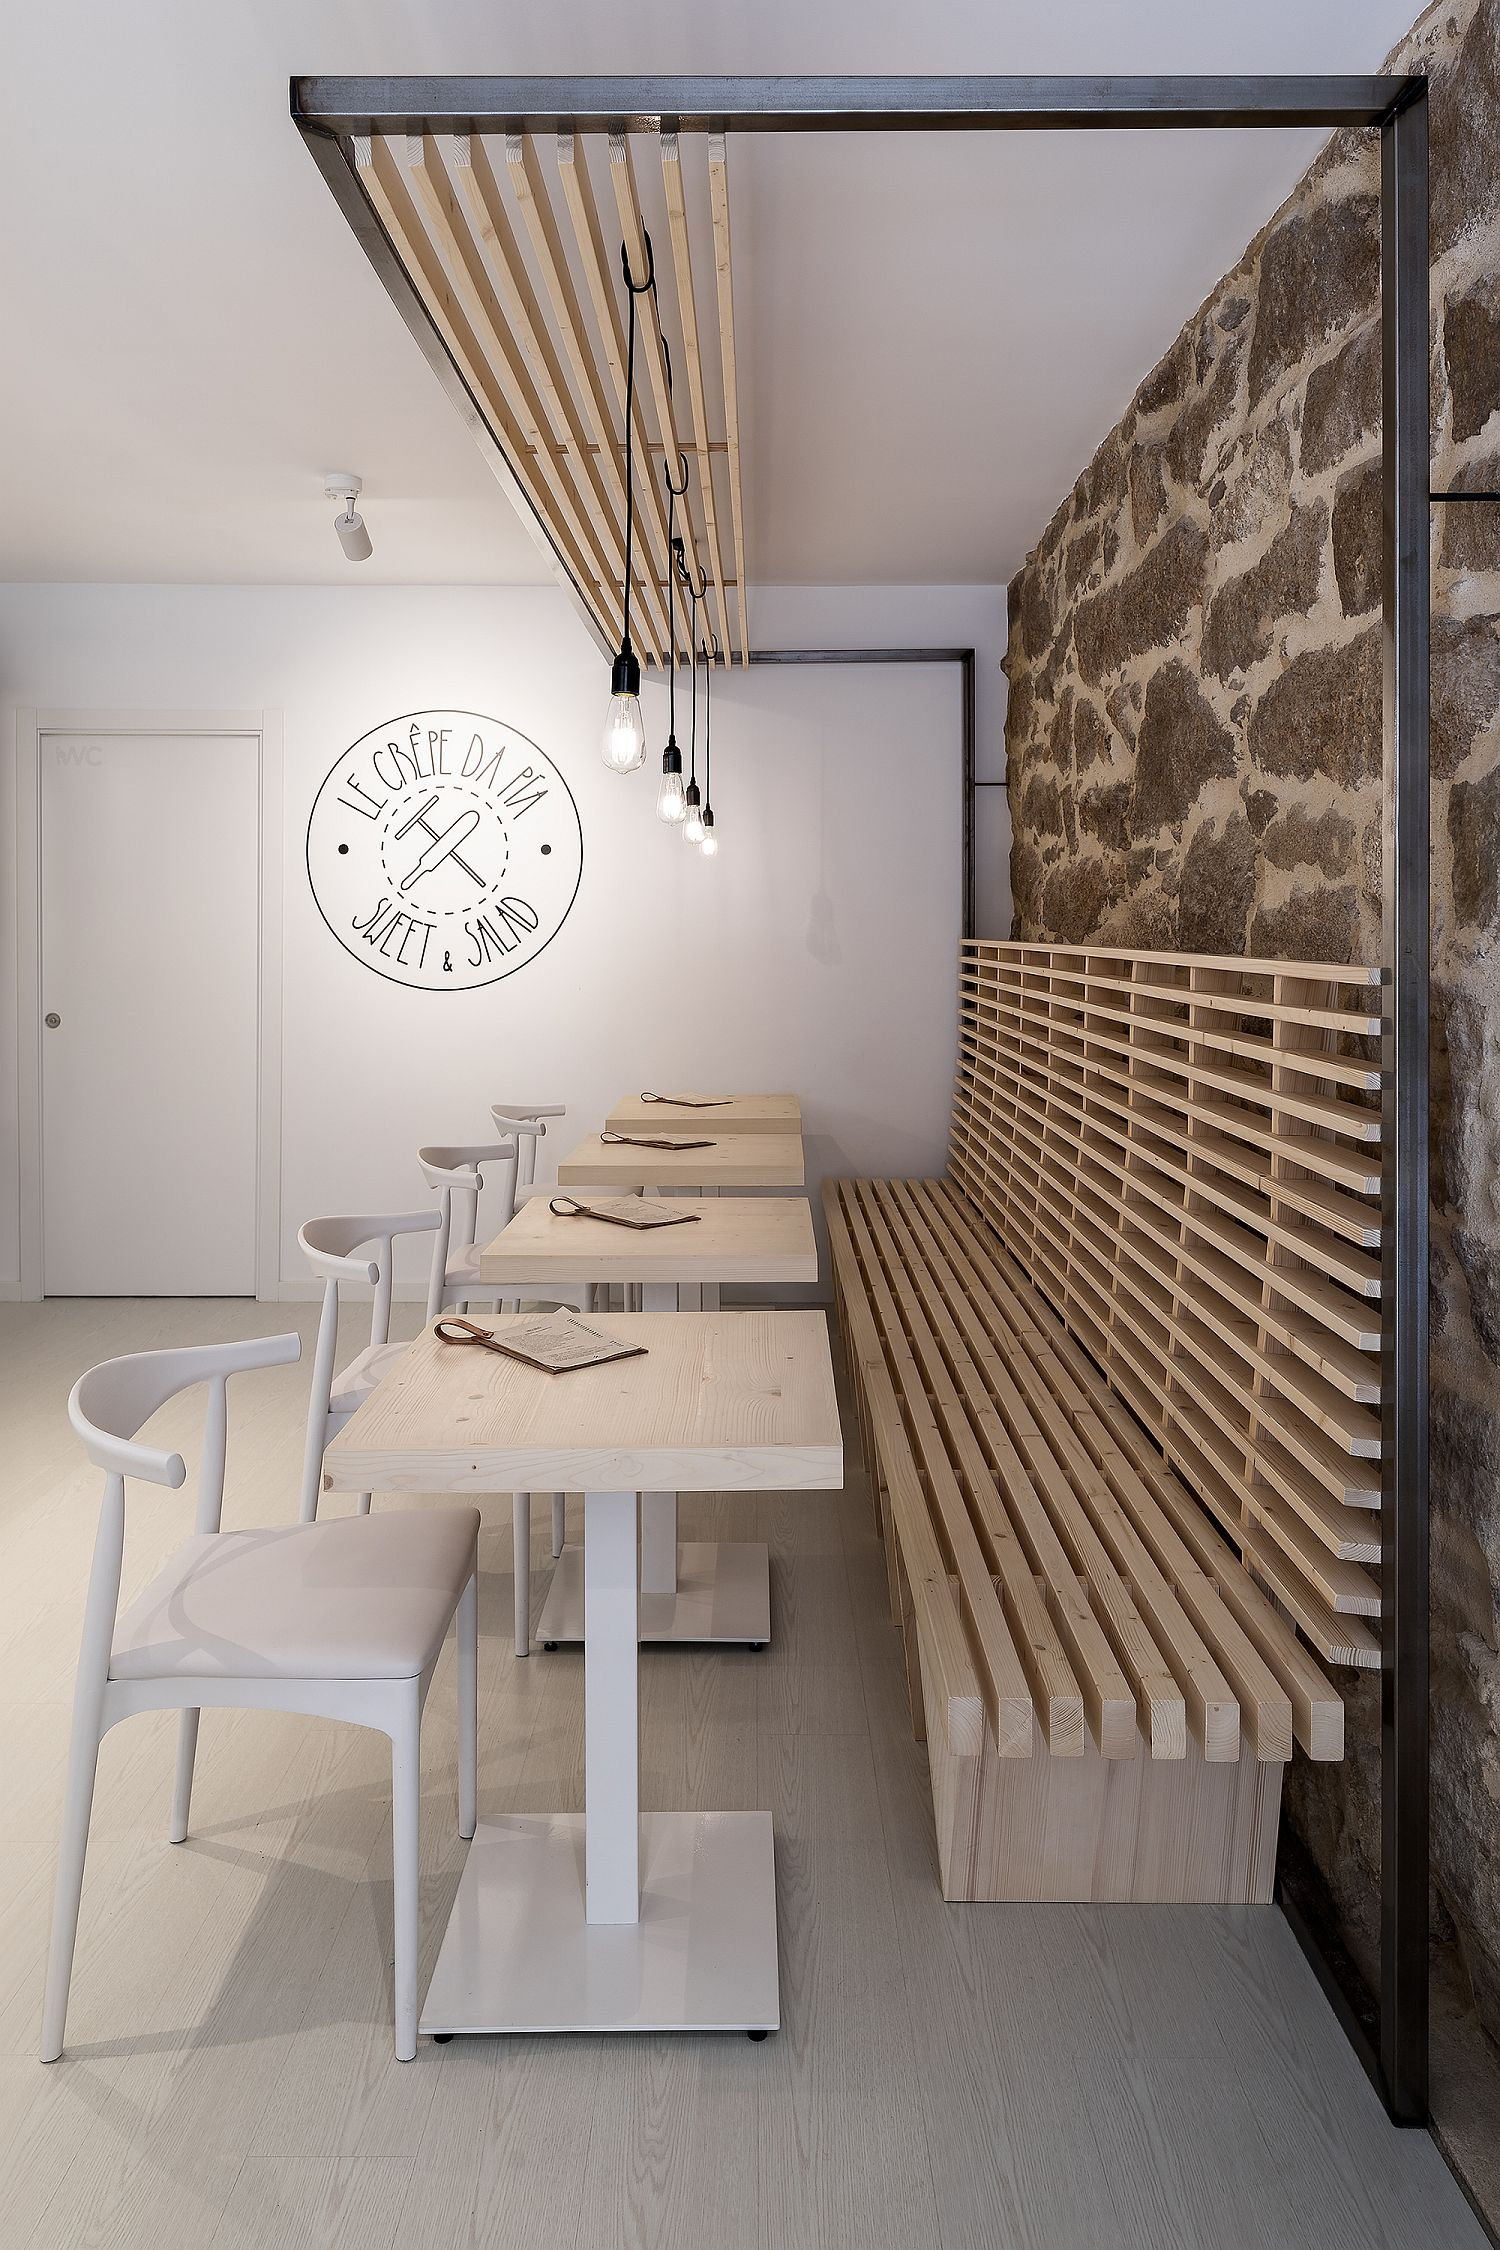 Stone, wood and contemporary finishes are carefully intertwined inside the restaurant